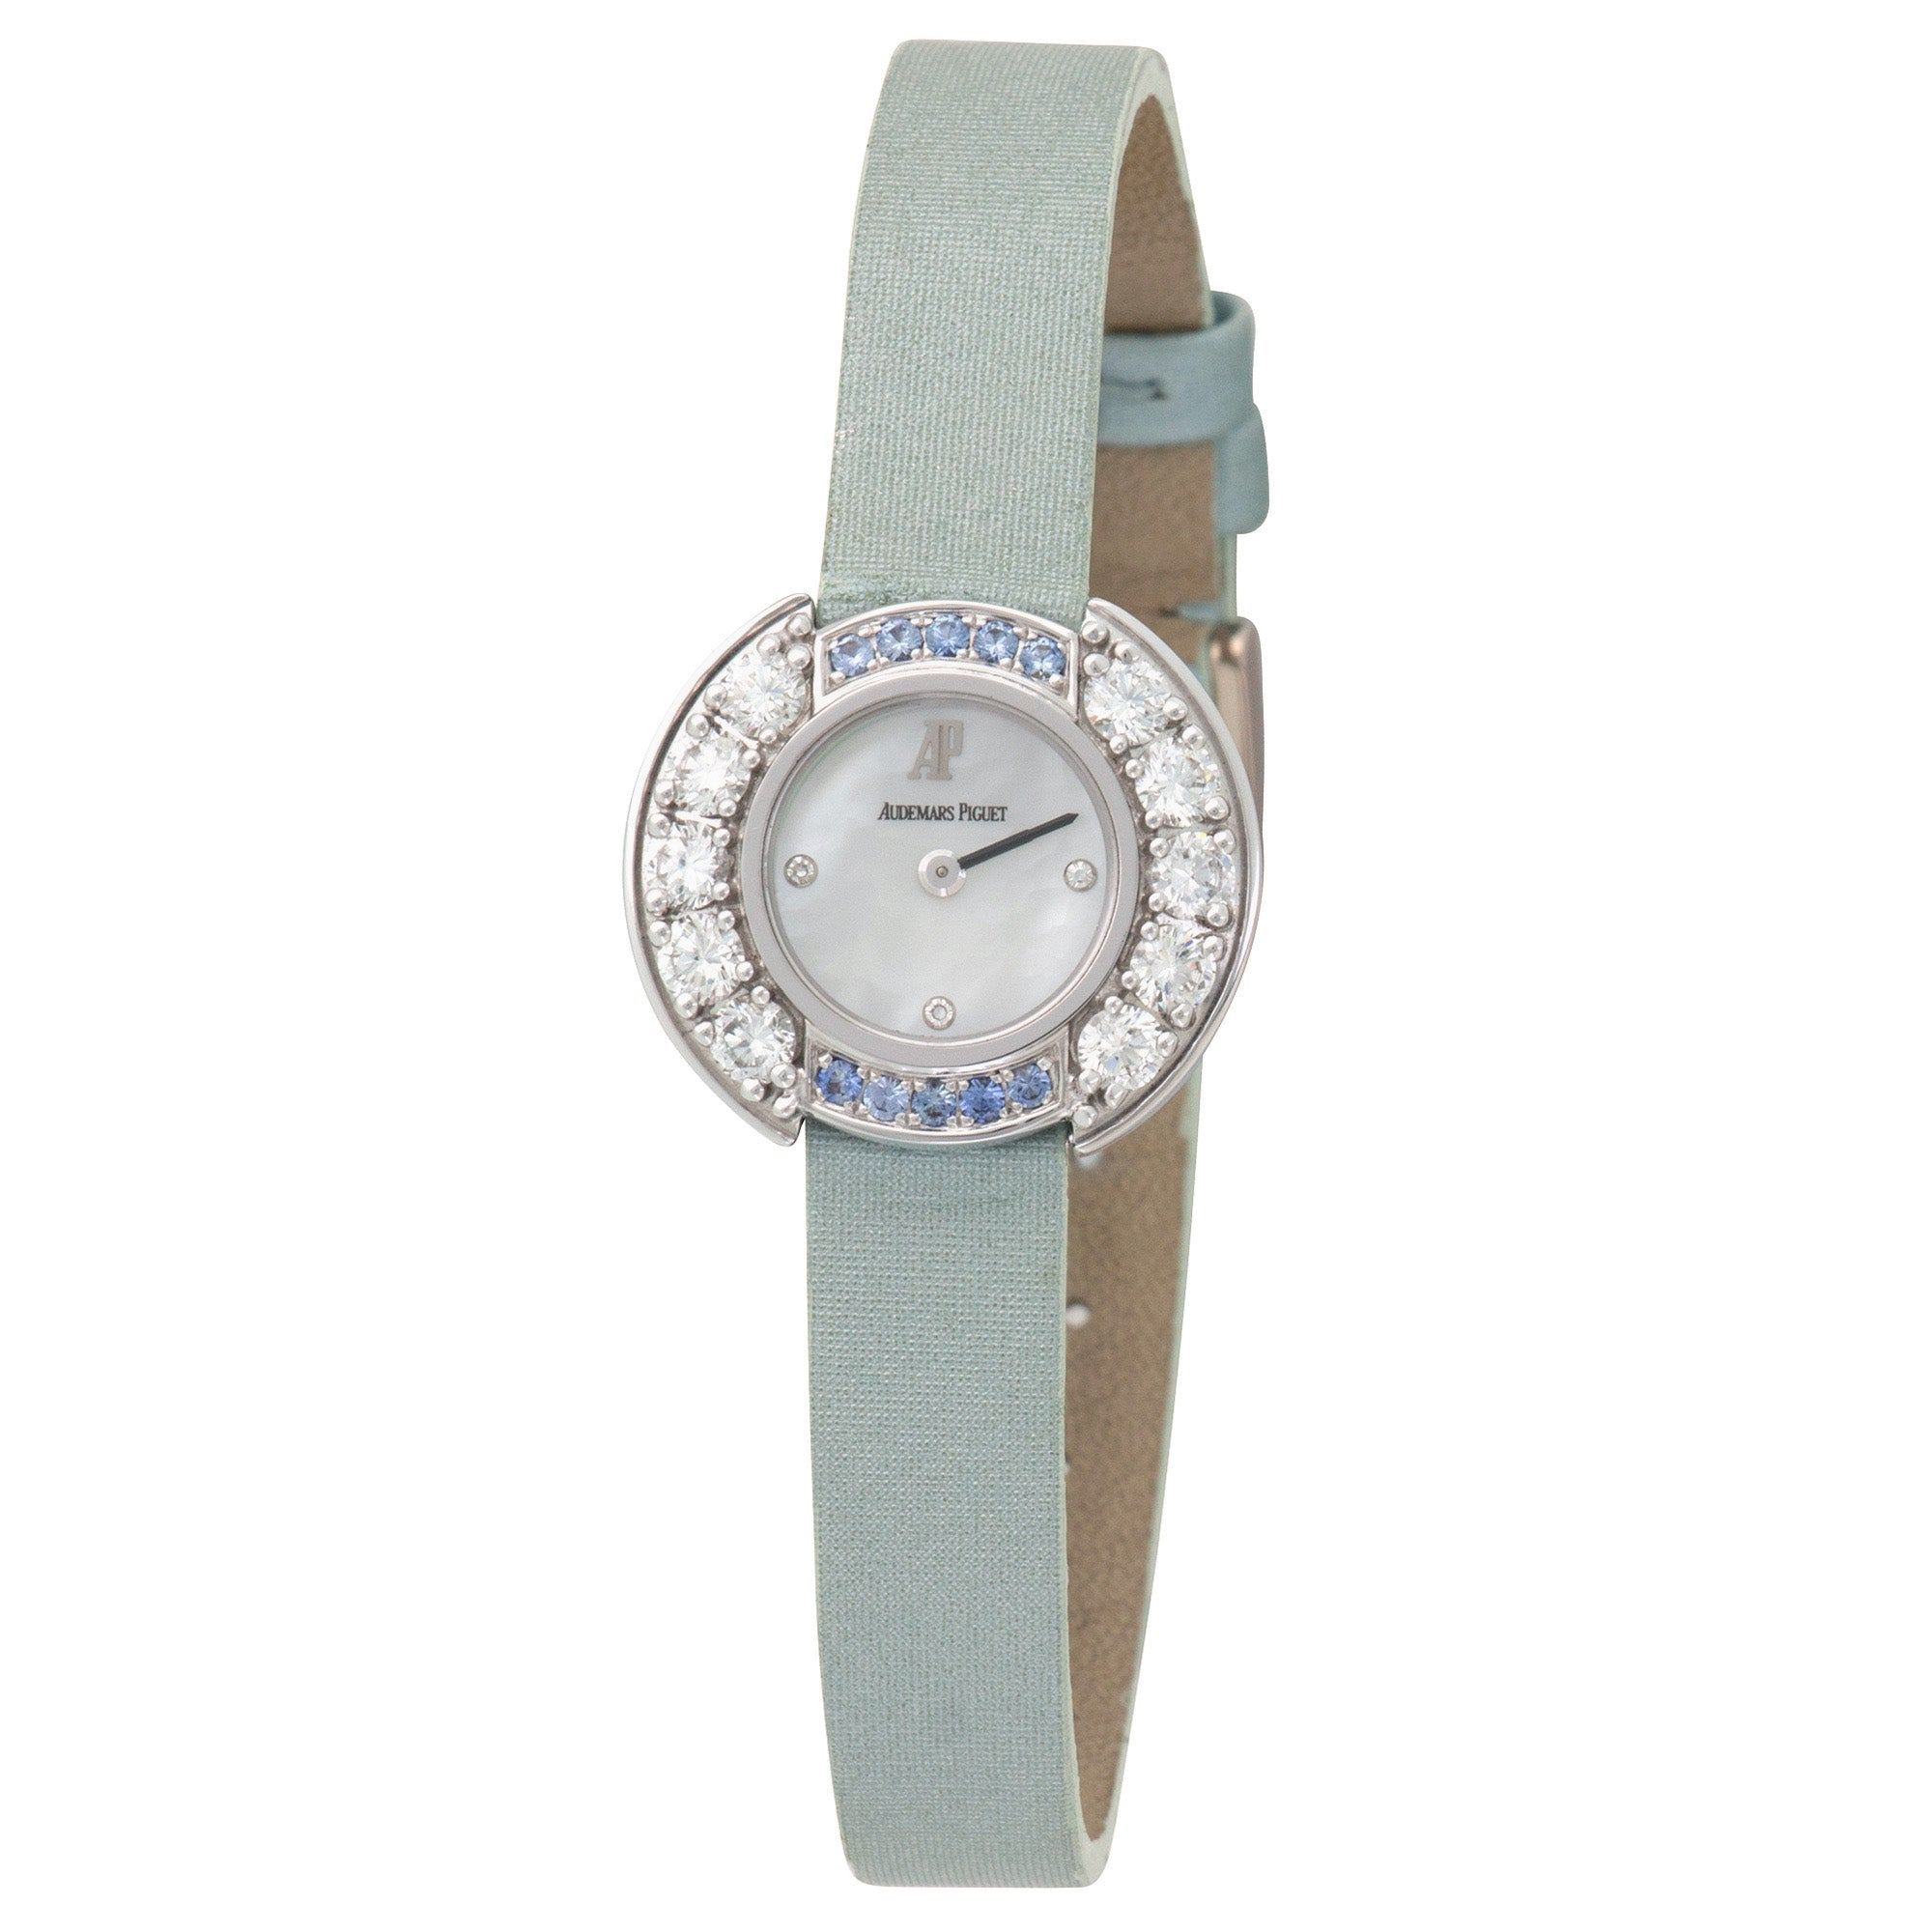 Audemars Piguet Vintage 67366BC.YY.A020RA.01 18k WG  Mint Ladies 18k WG Mother of Pearl with Diamond Markers 22mm Quartz 2000s Fabric B+P